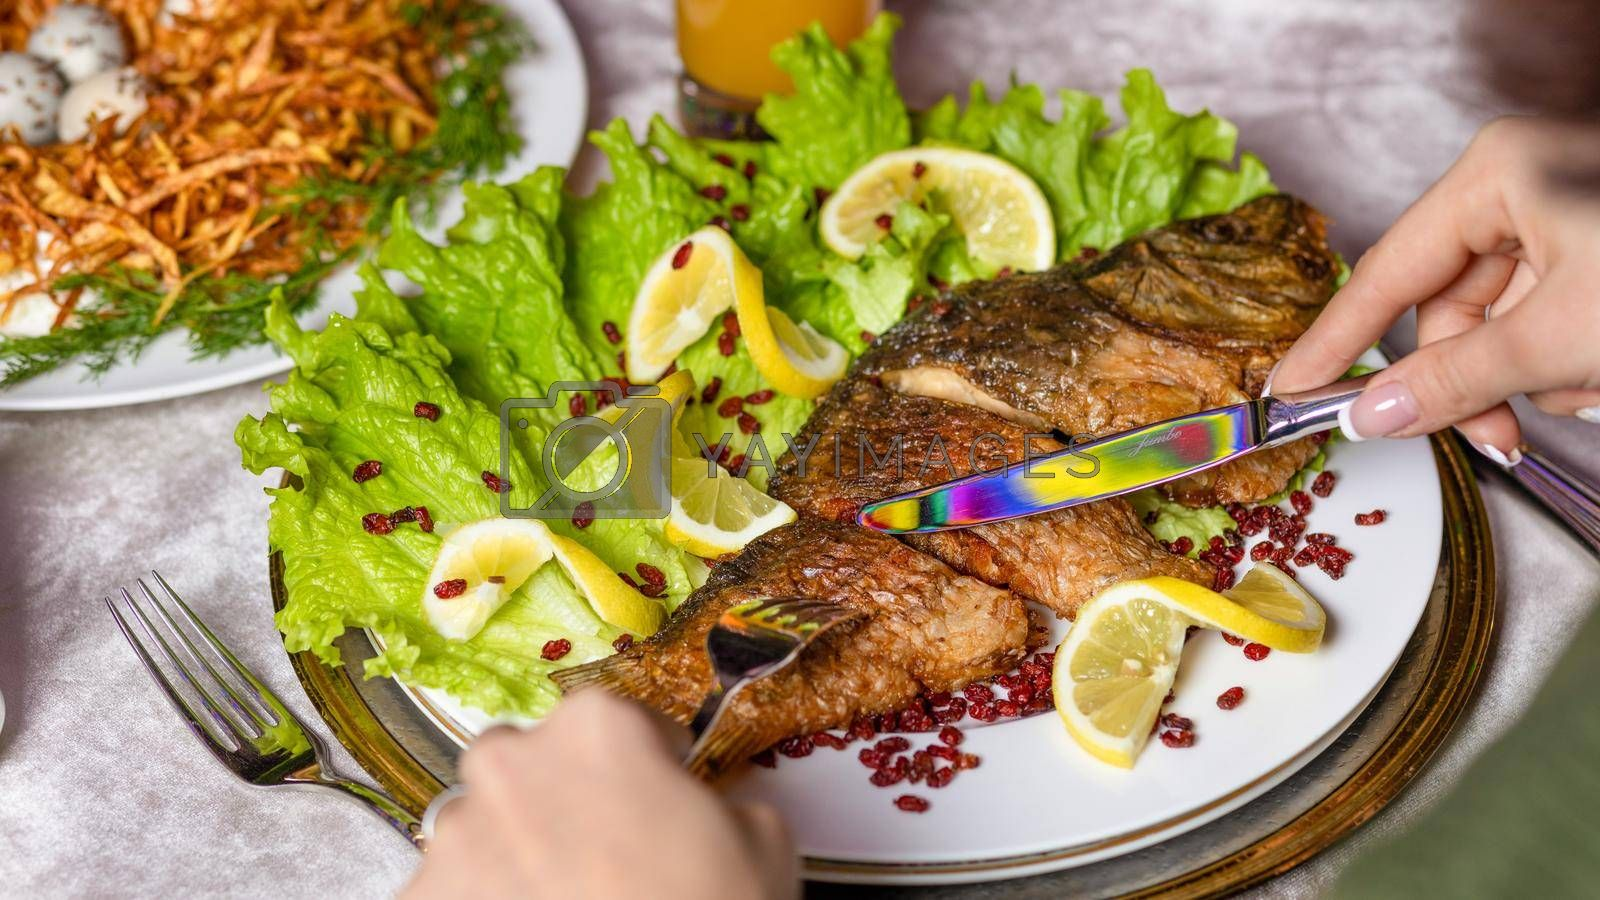 Woman eating a grilled whole fish with a lemon